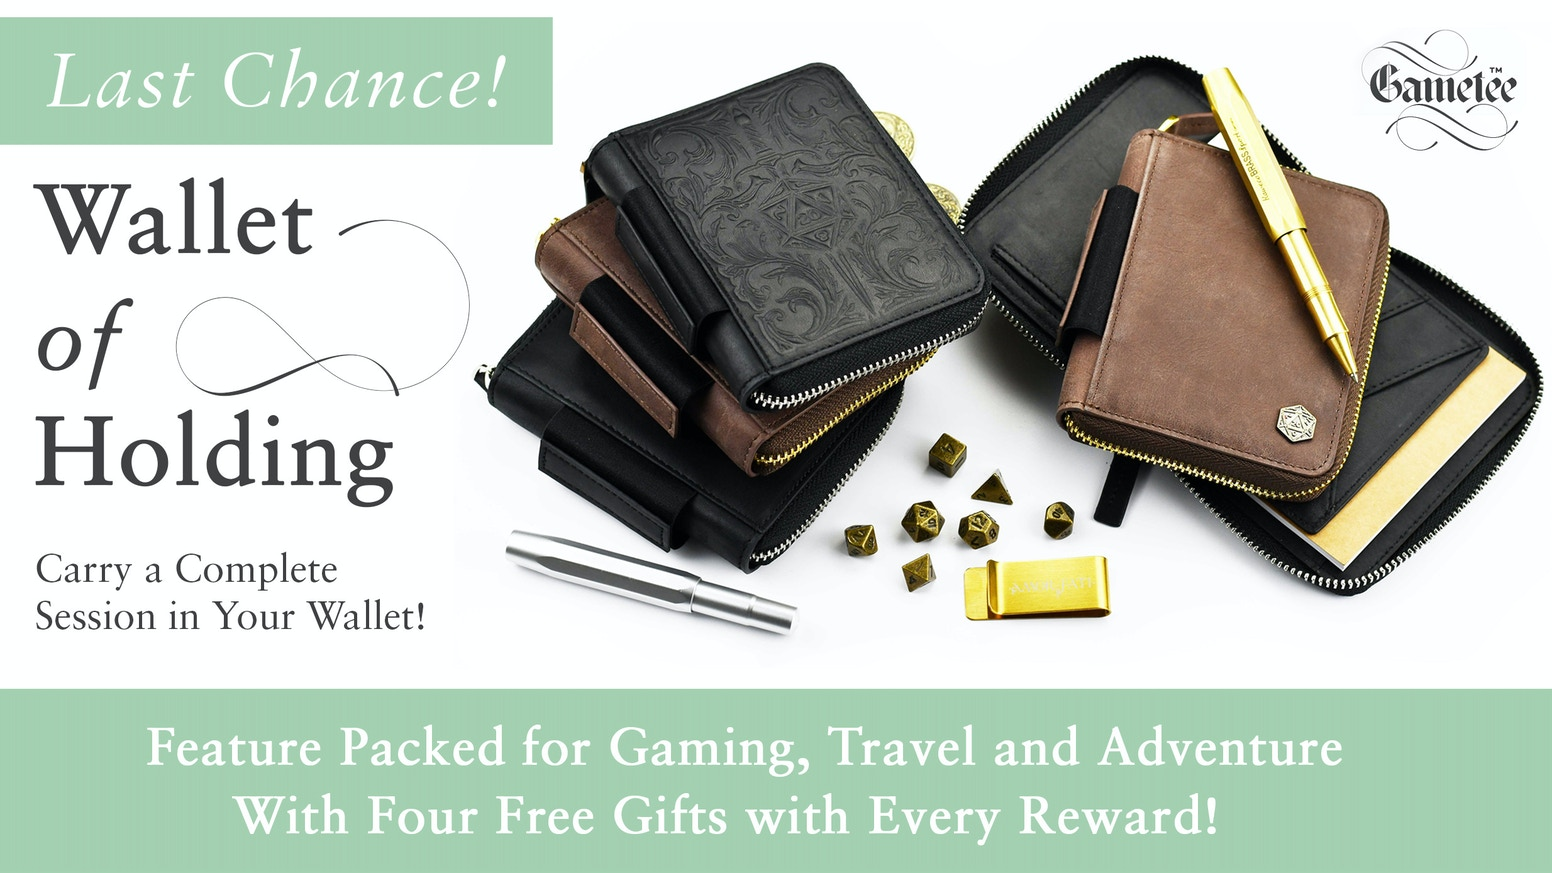 Huge Capacity! Adventure Everywhere! An Indispensable Wallet, Practical, Durable, Luxurious & Masterfully Crafted in Premium Leather